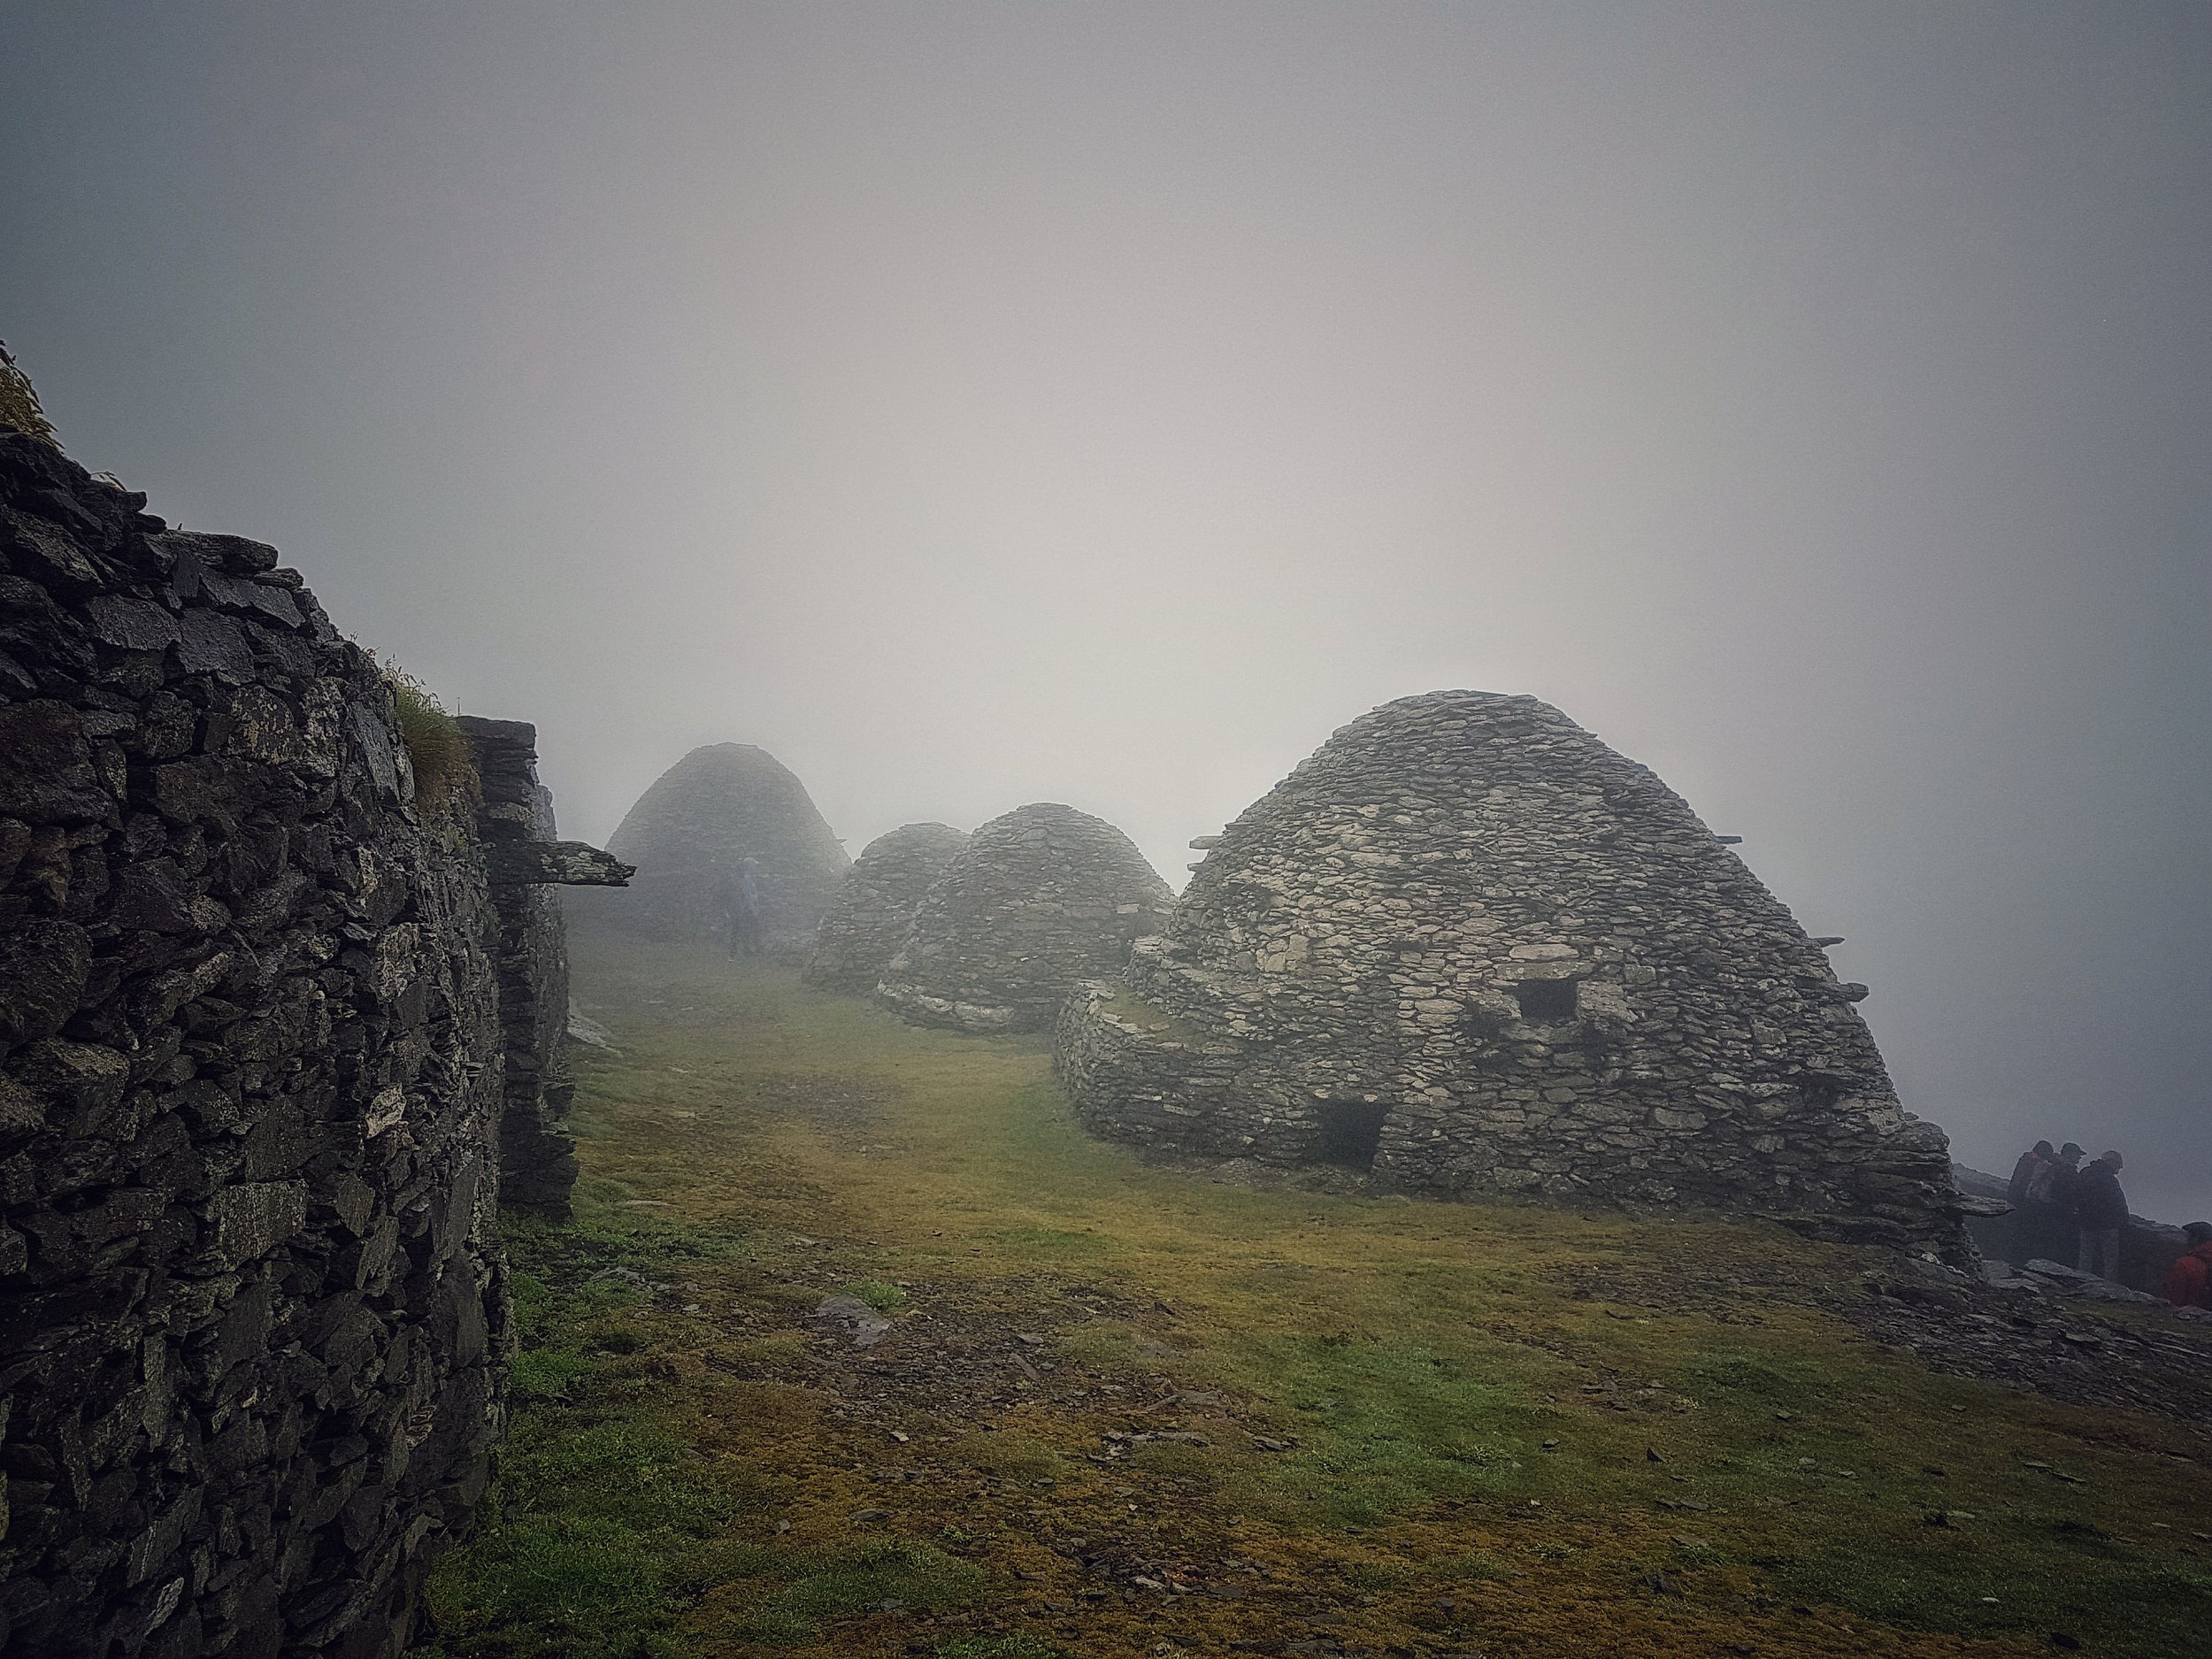 Beehive Huts on Skellig Michael